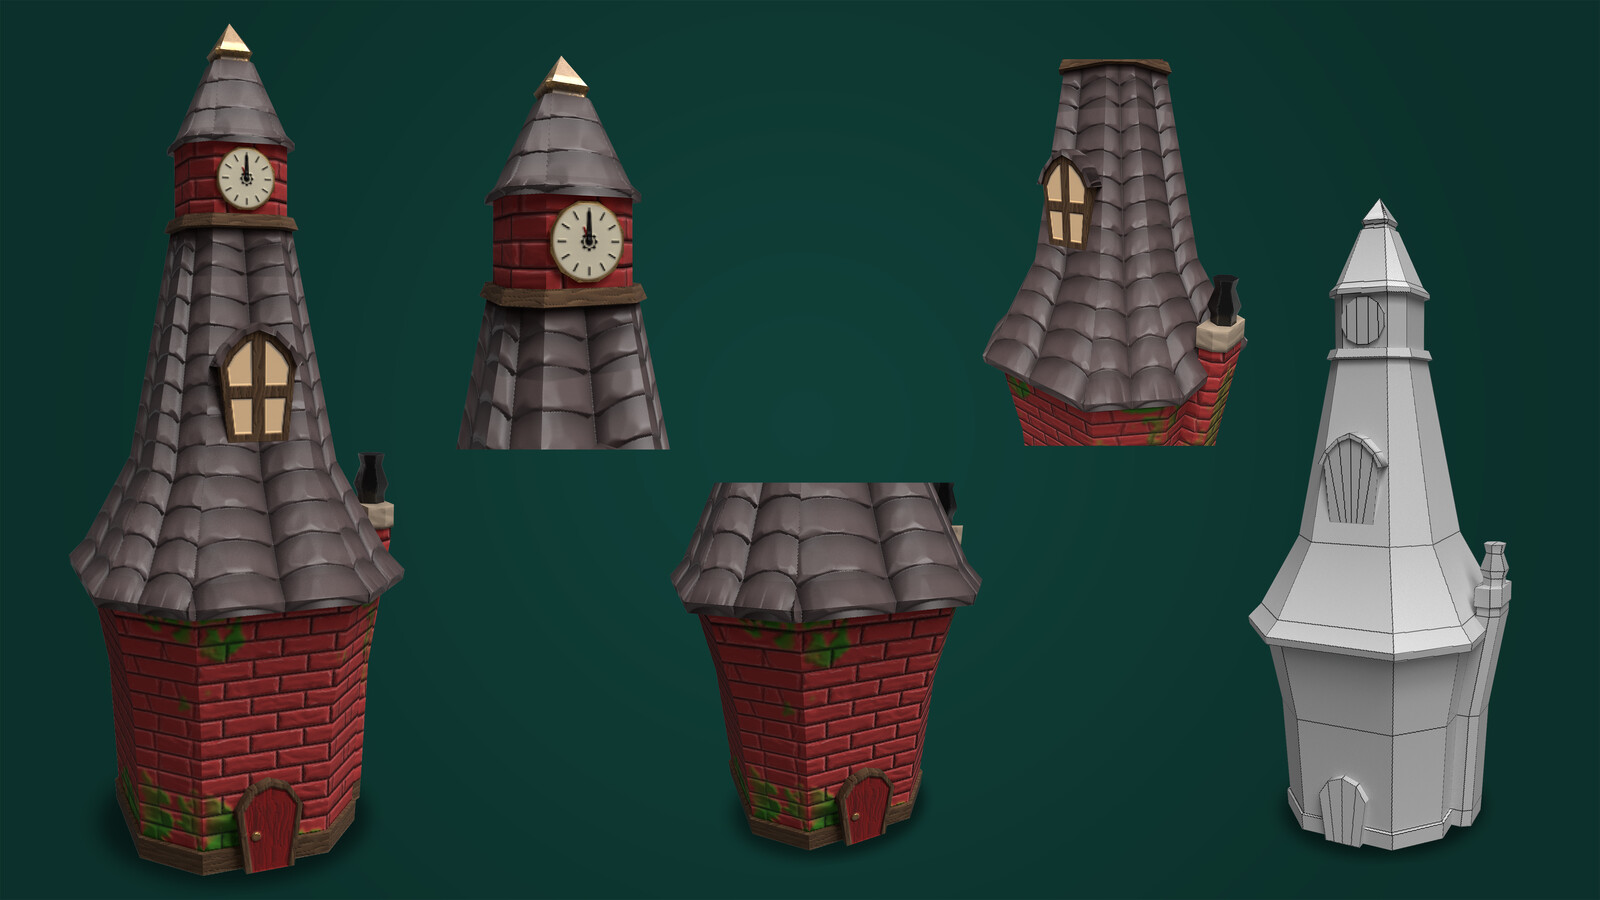 'Aristocrash' Game Assets